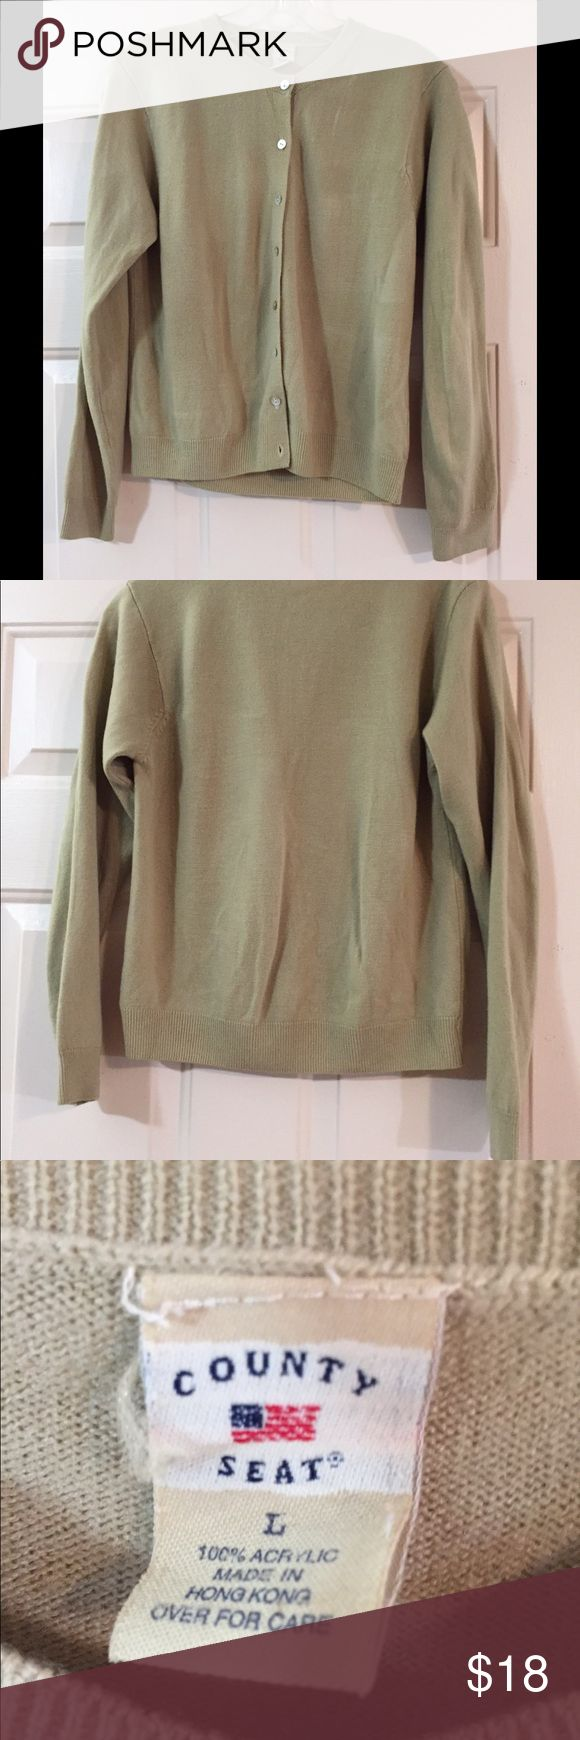 🕰🌛 VINTAGE County Seat Cardigan Excellent condition for vintage product.  From County Seat est. 1973-1999.  100% Acrylic   Size large,  bust 35 inches, length 21 inches, sleeve 22 inches. Tan cardigan. Be sure to review measurements before purchase. No visible and or noticeable flaws. 🐶🚭 County Seat Sweaters Cardigans